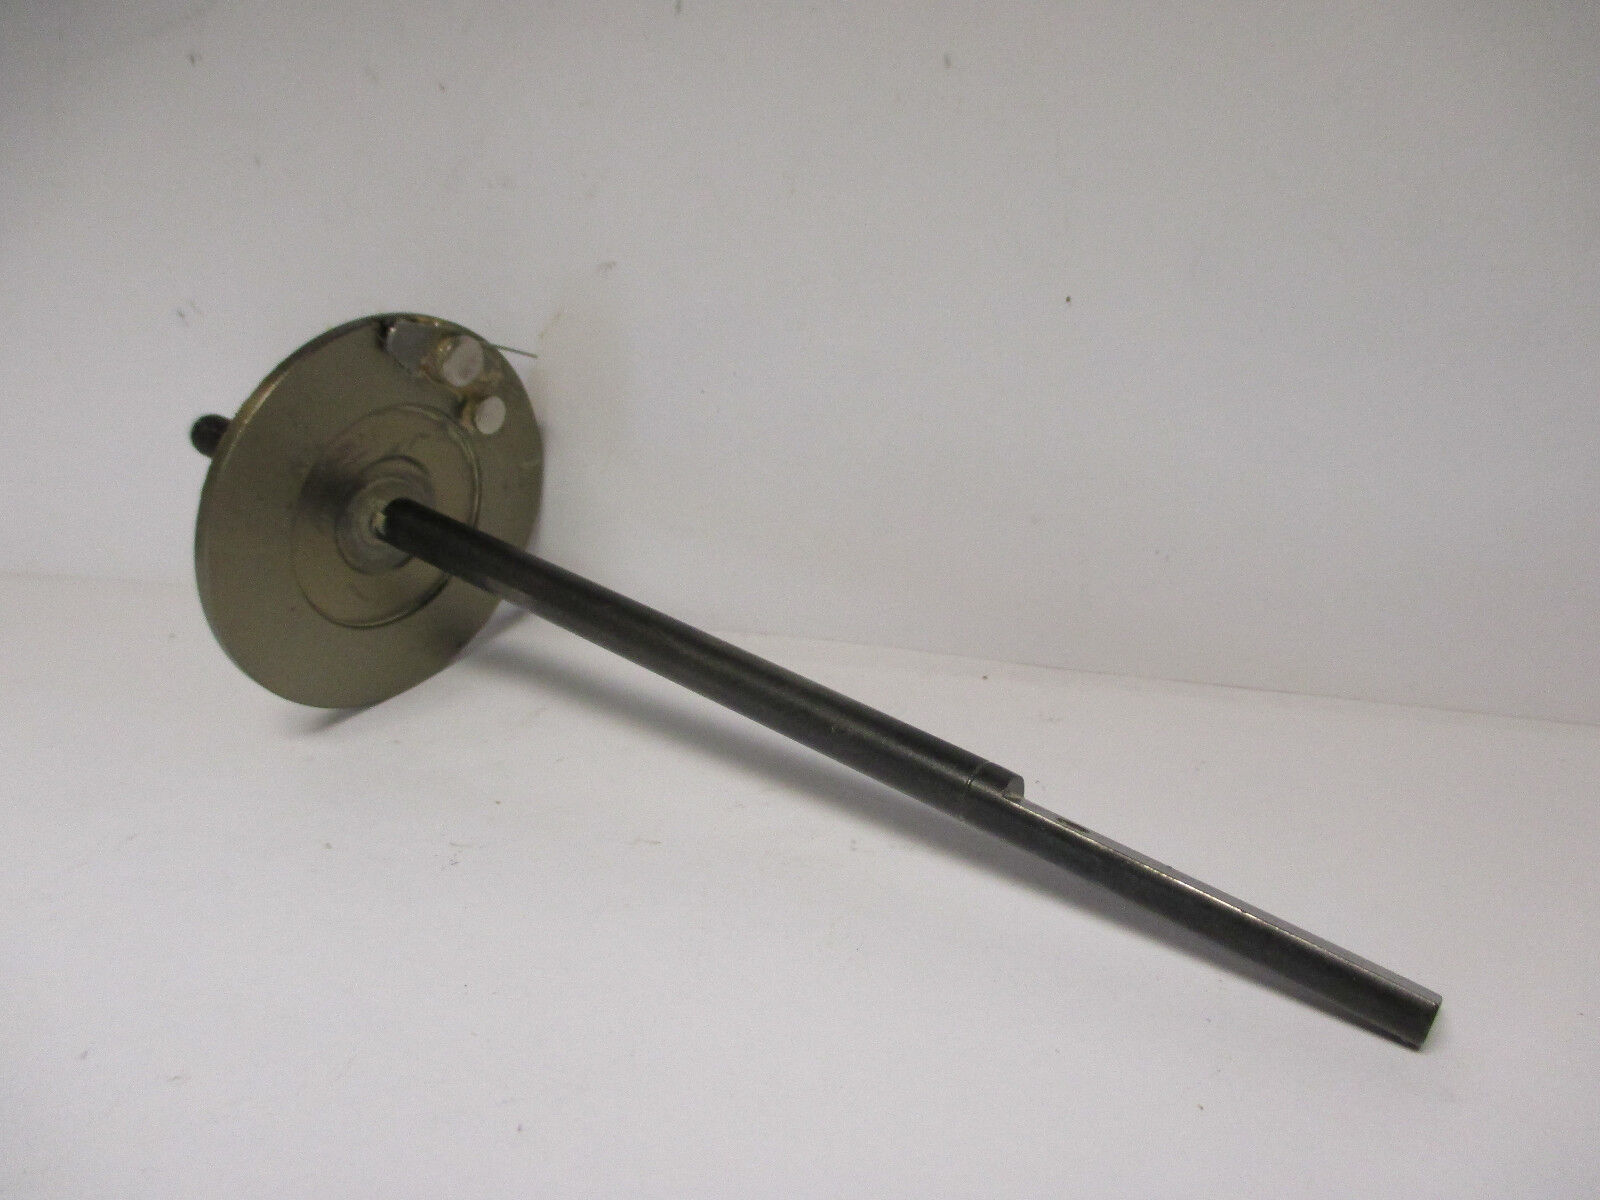 USED - FIN NOR SPINNING REEL PART - AHAB 20 - Main Spool Shaft